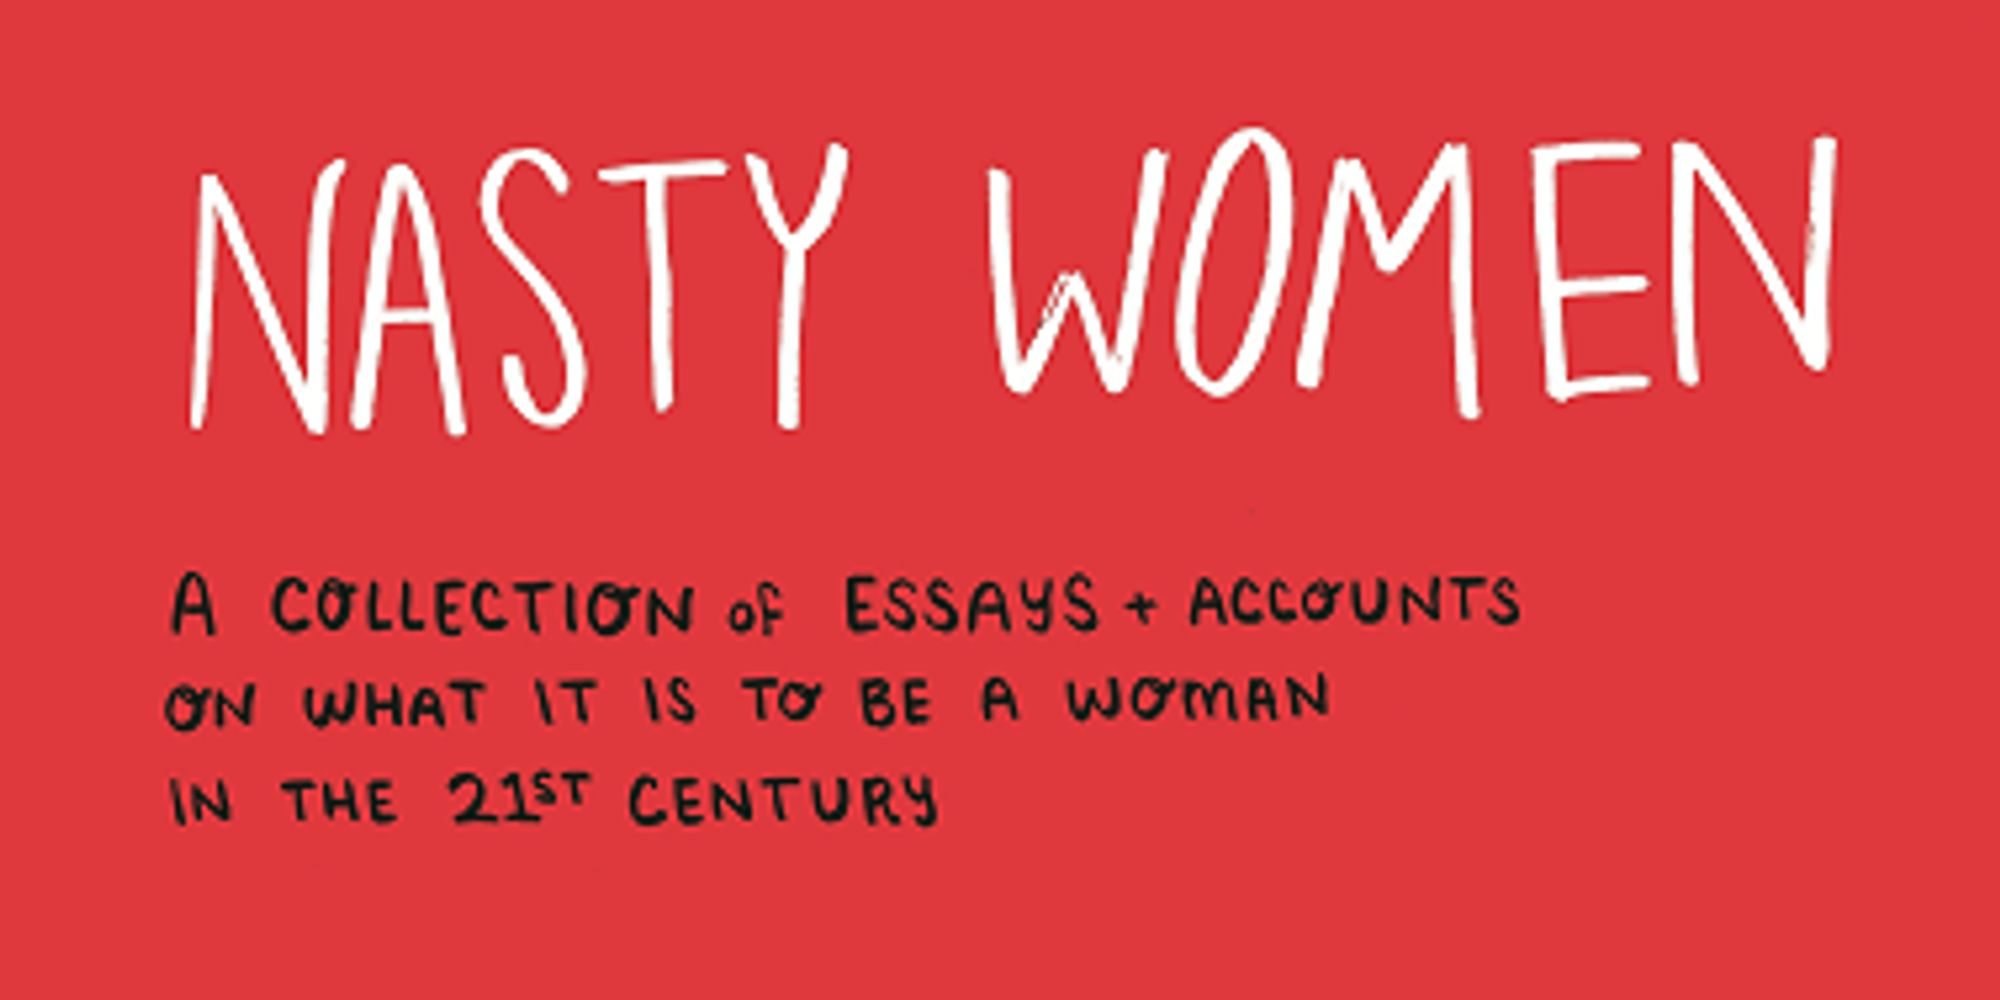 essays on w essays of africa magazine nd birthday celebration  nasty women is the intersectional essay collection feminists need nasty women is the intersectional essay collection